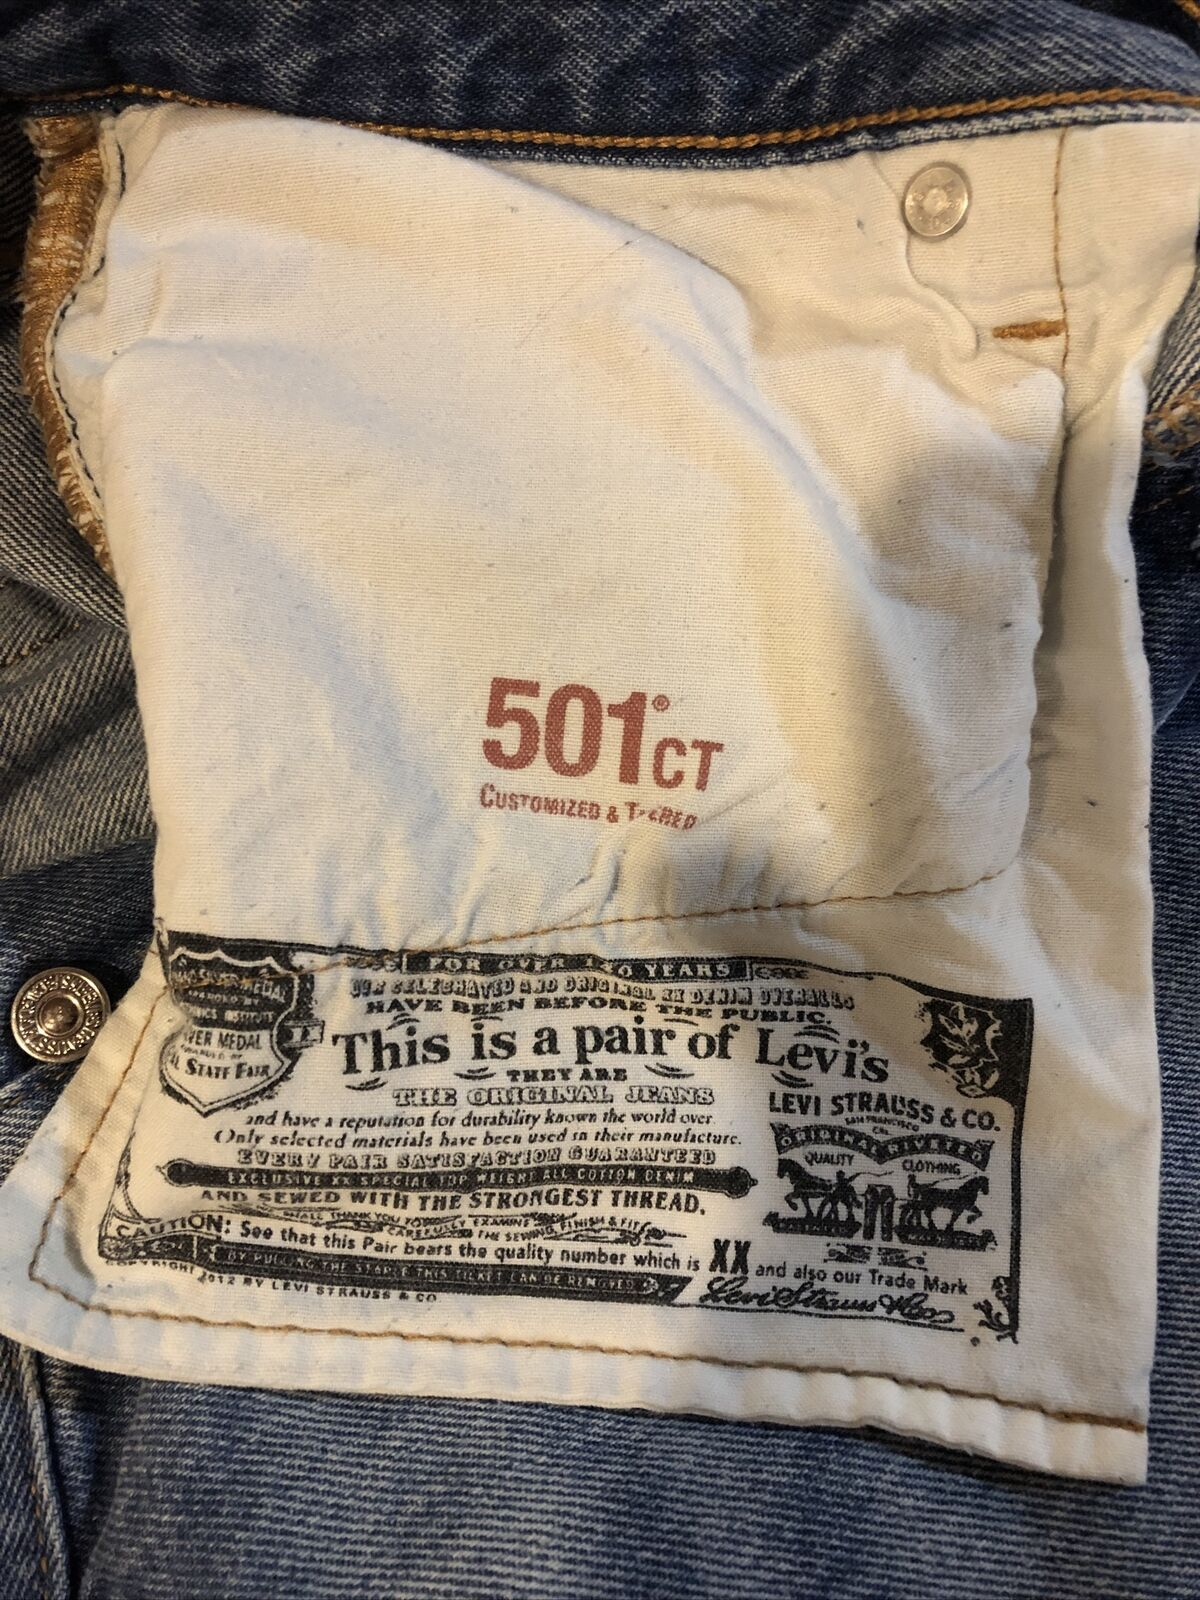 Levis Distressed 501 CT Jeans Size 28/32 - image 10